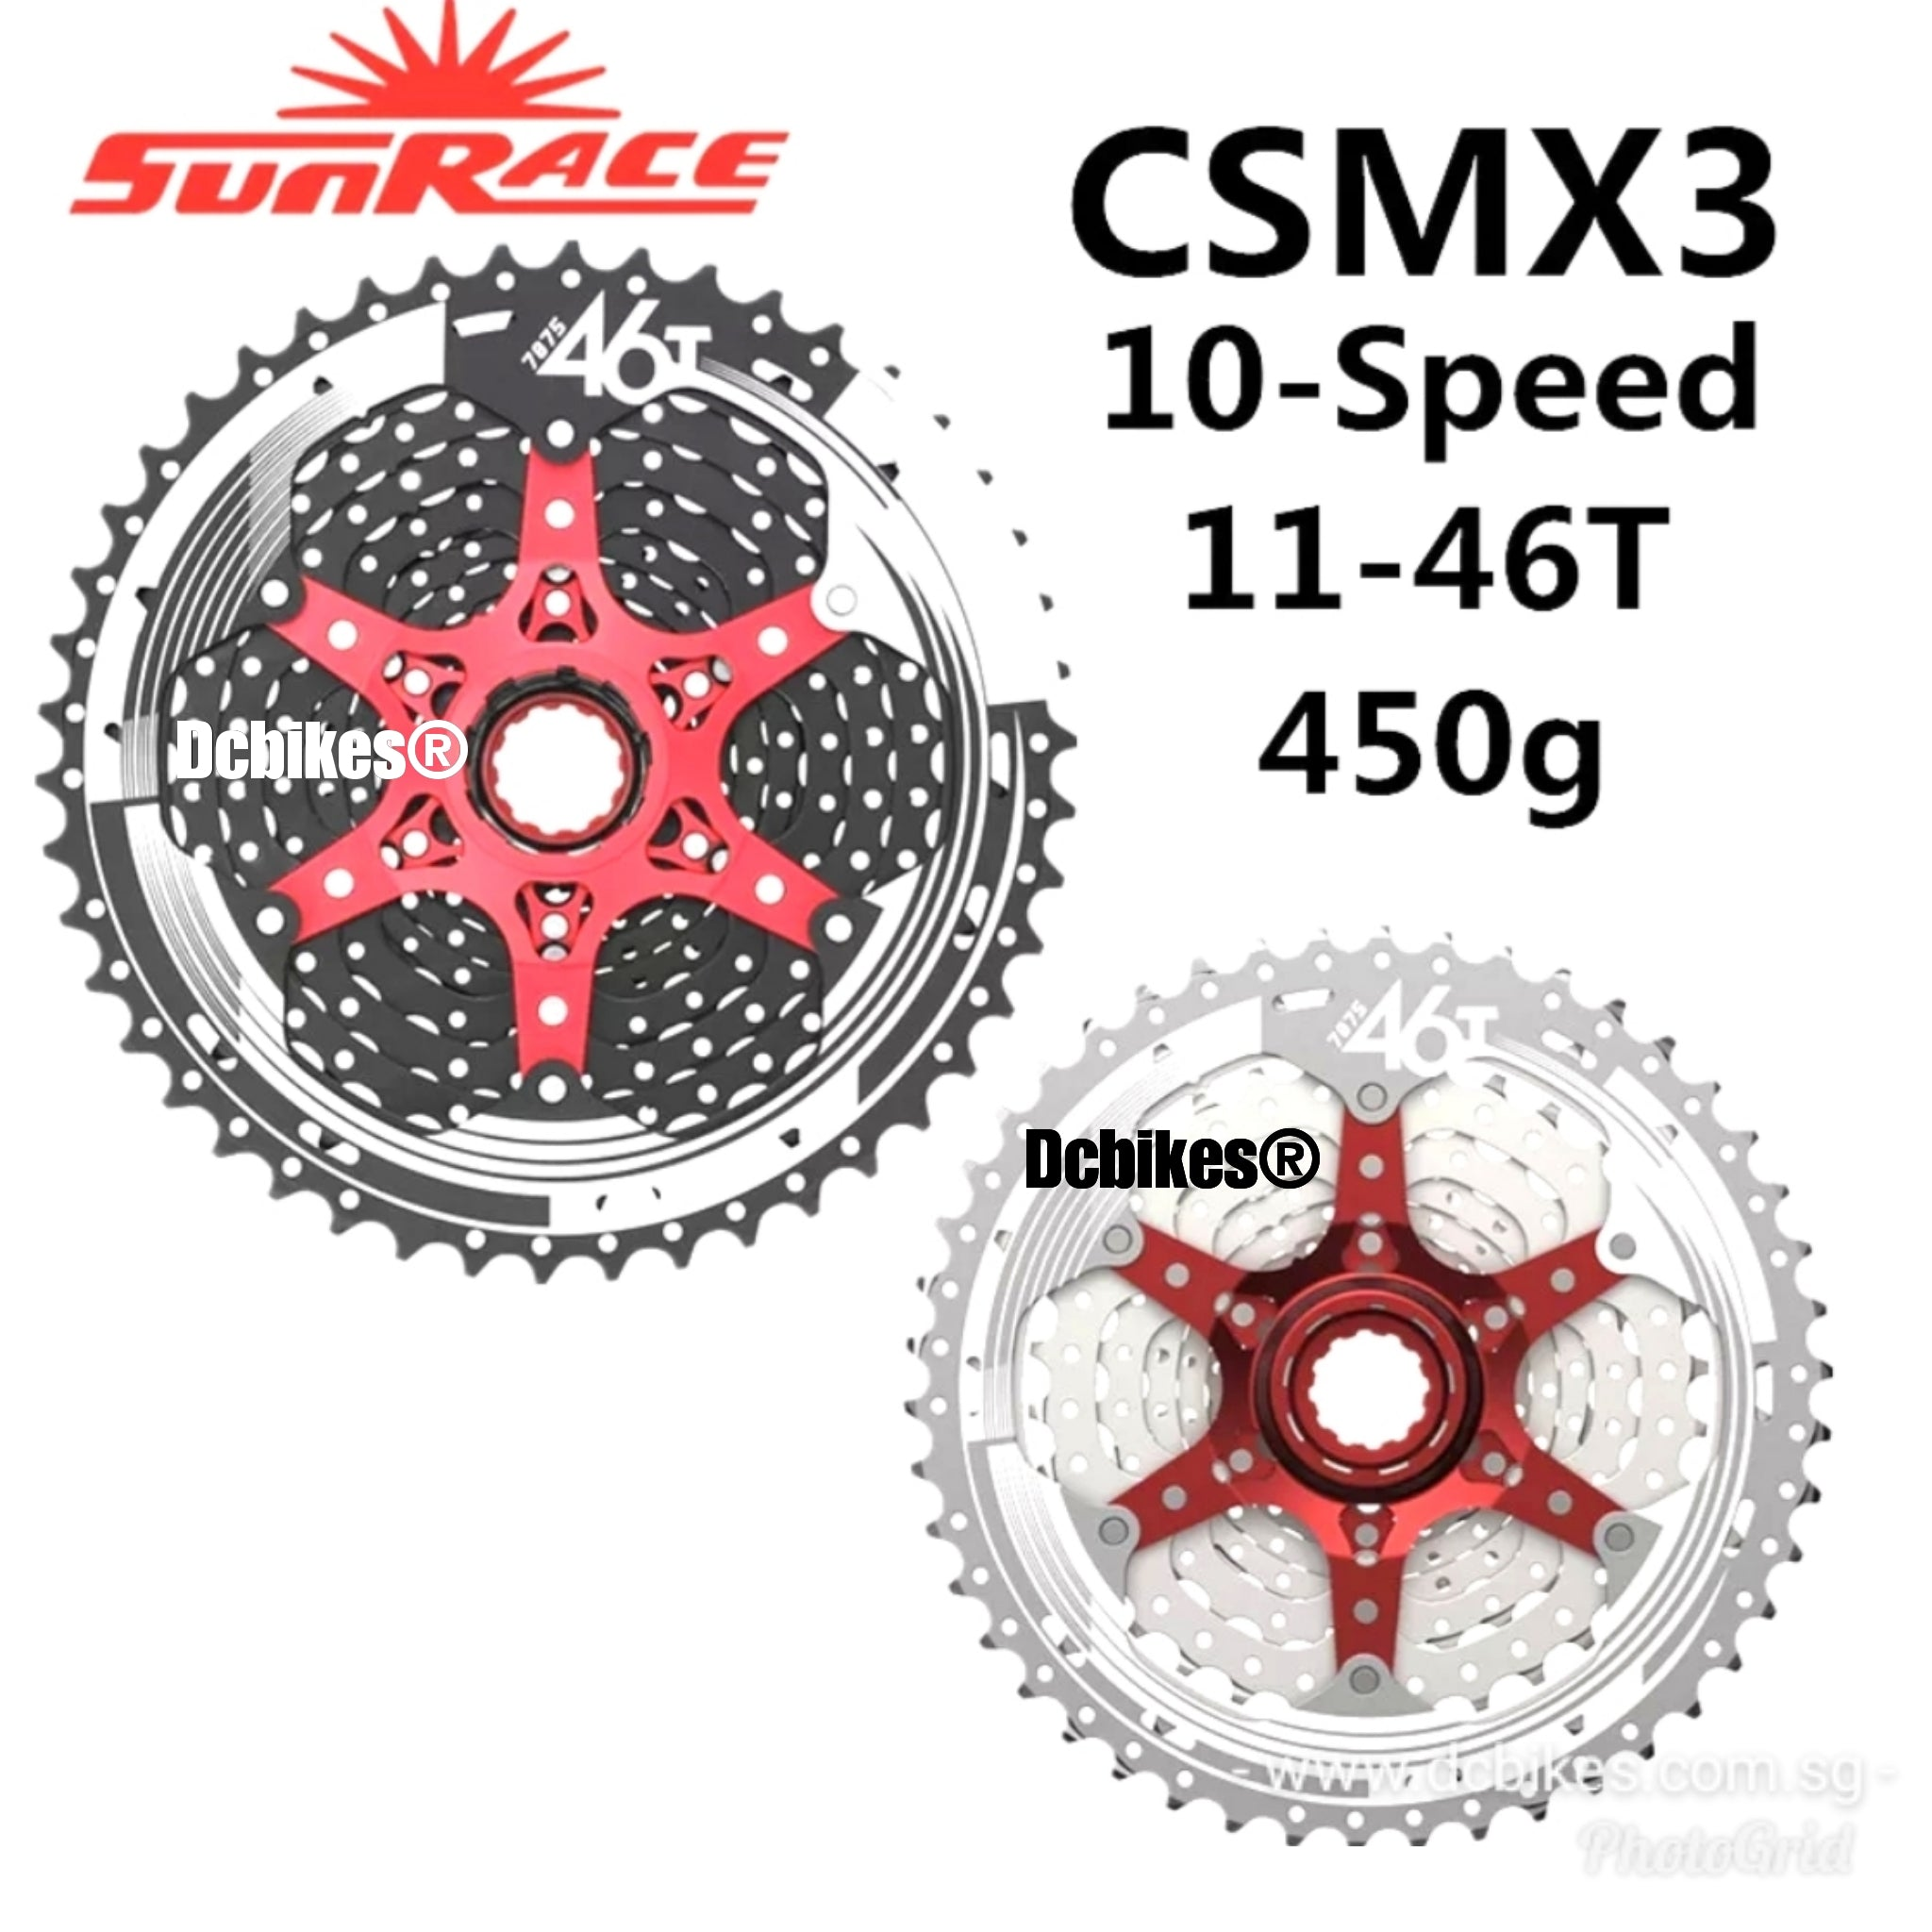 Sunrace 10-speed 11-46T cassette CSMX3 wide ratio MTB in Black with rd extender